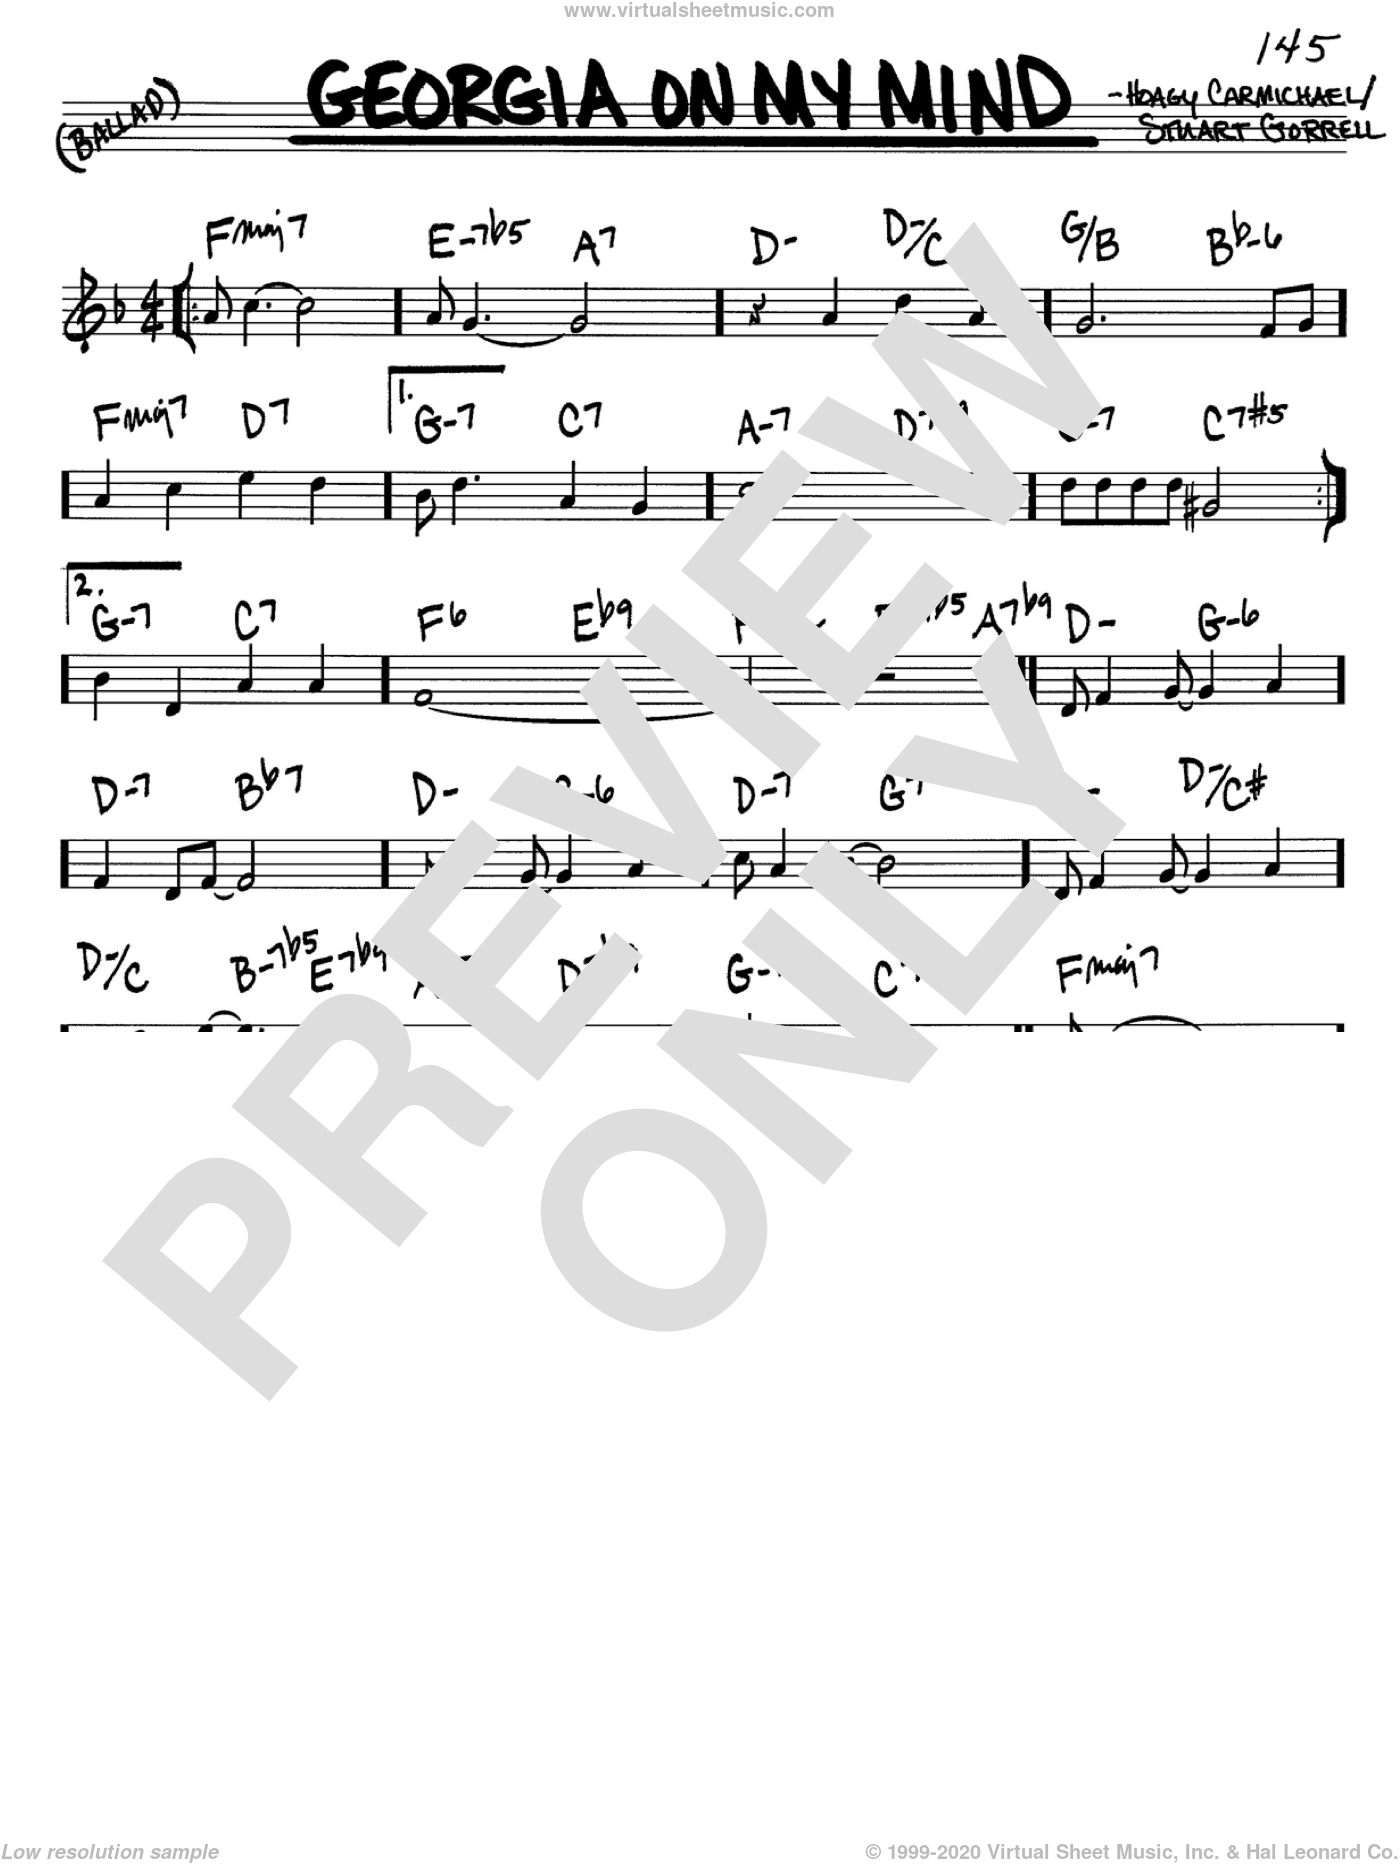 Georgia On My Mind sheet music for voice and other instruments (C) by Stuart Gorrell, Ray Charles, Willie Nelson and Hoagy Carmichael. Score Image Preview.